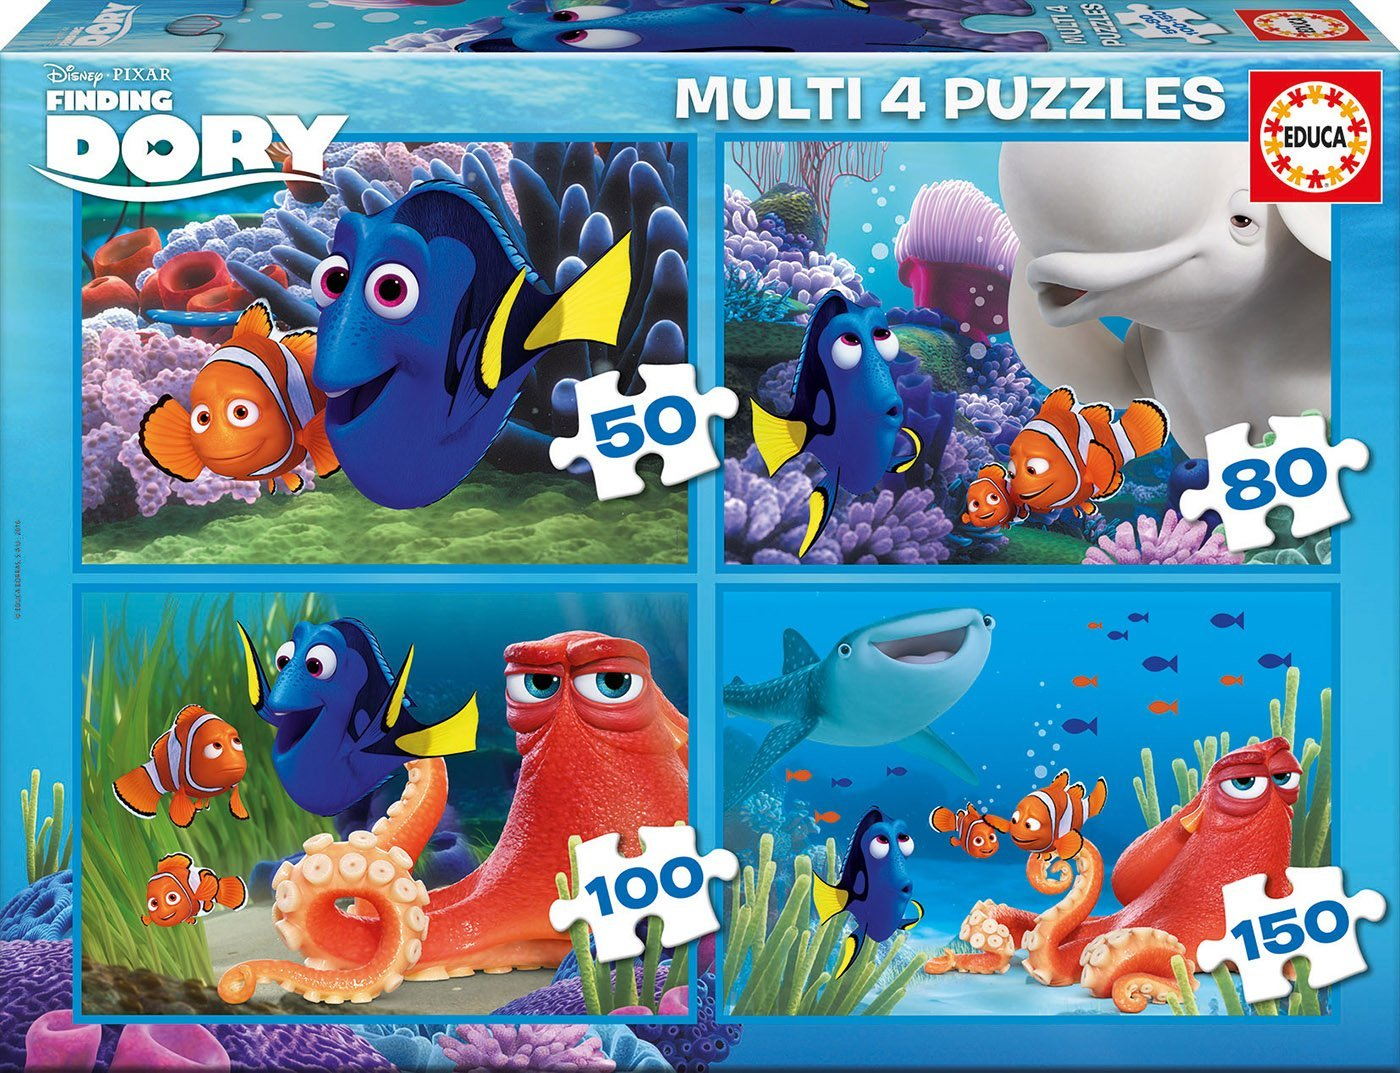 4-puzzles-finding-dory